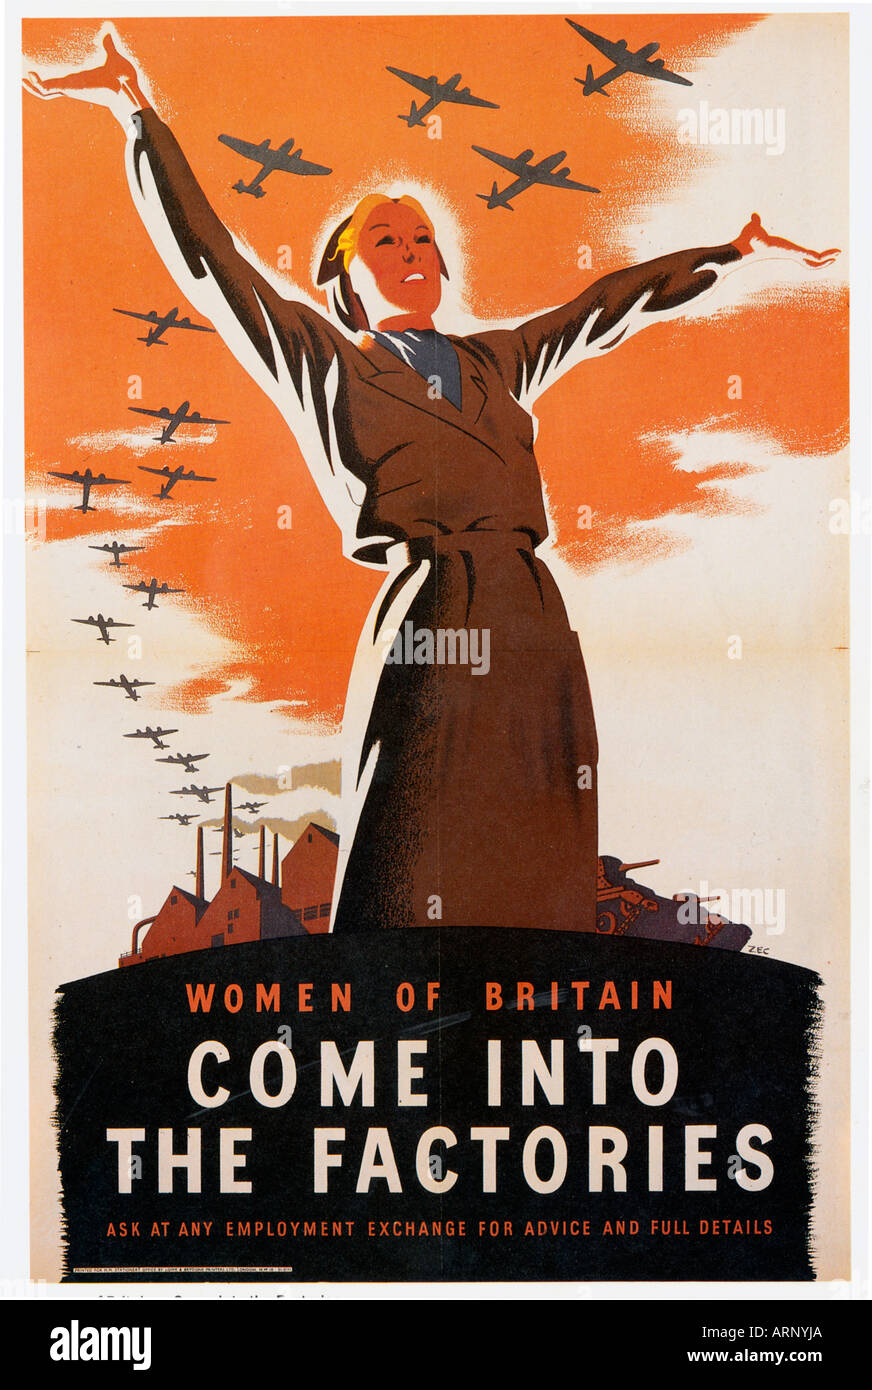 Women Come Into The Factories 1940 British propaganda poster to recuit women to the workforce - Stock Image